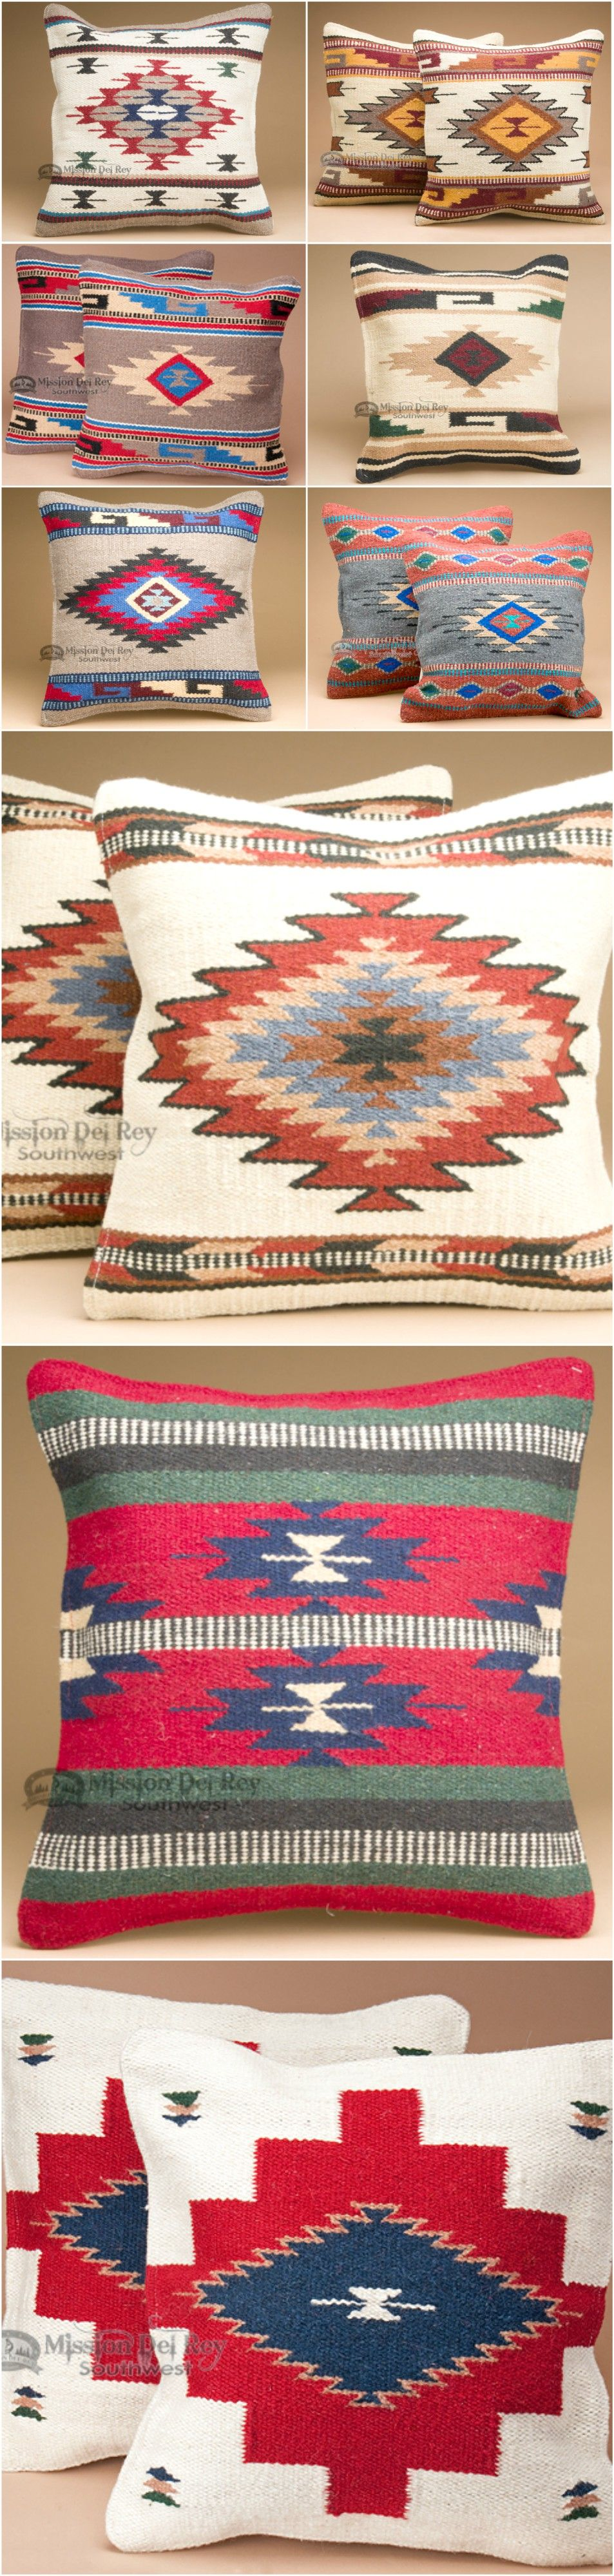 If You Like Southwest Style And Rustic Decor, You Will Love The Designs And  Colors